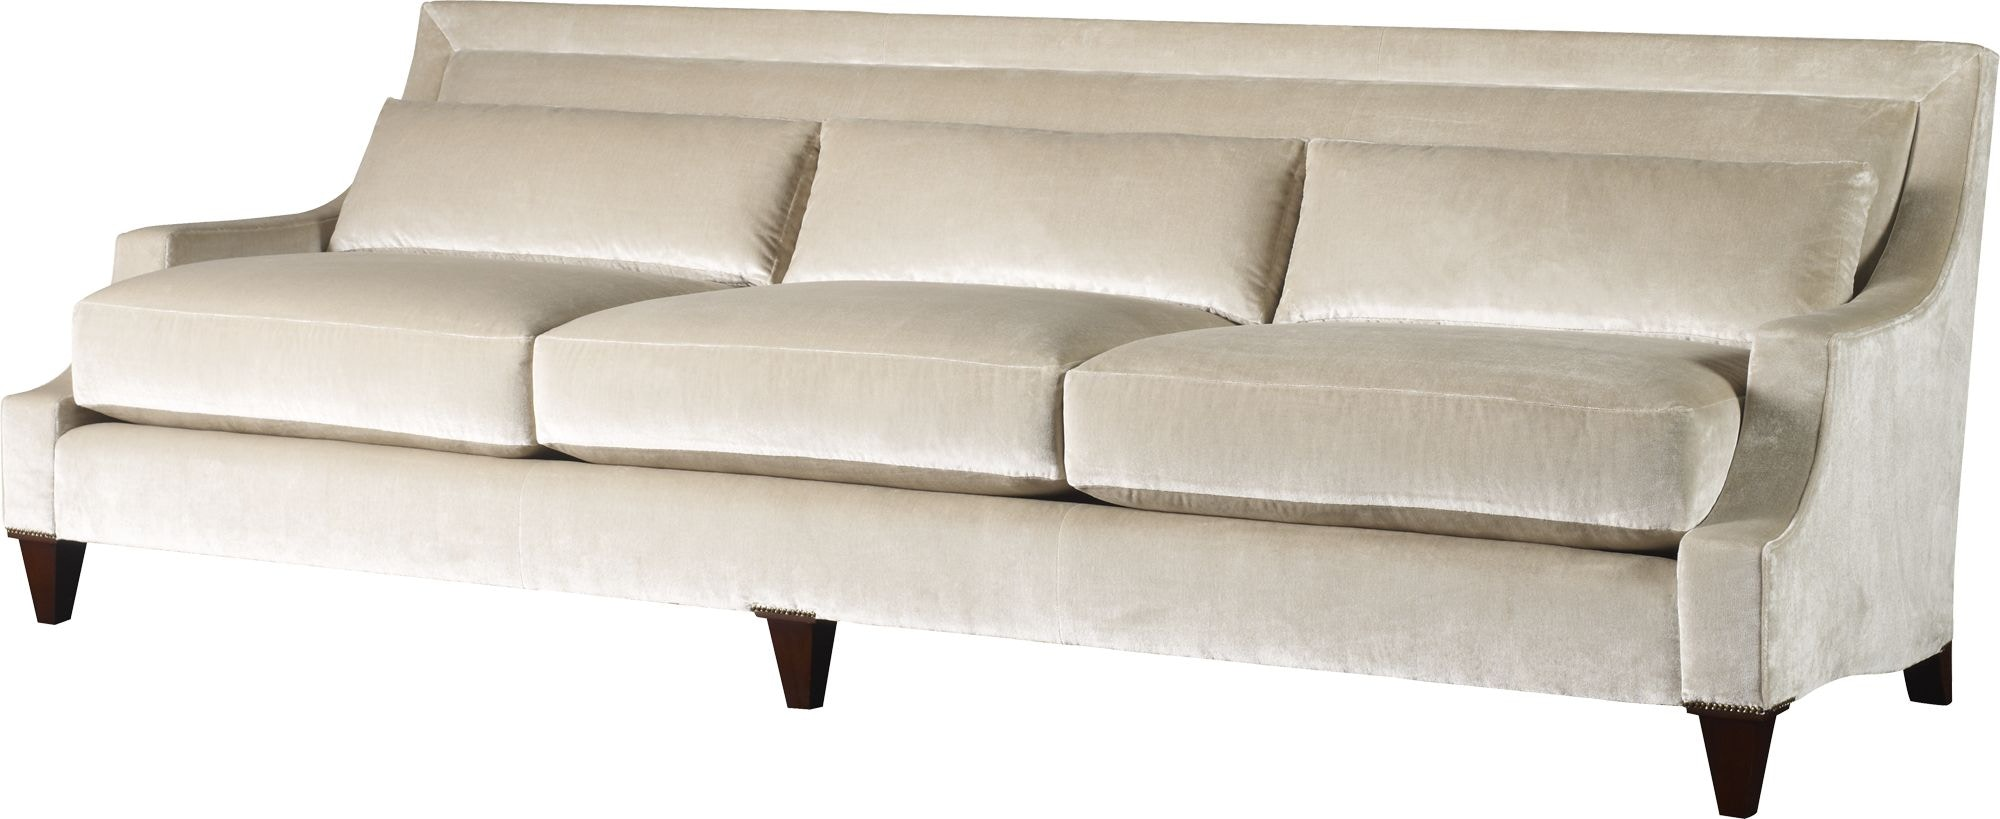 sofa furnitureland south craigslist vancouver couch baker sofas paris 6369 97 furniture array from